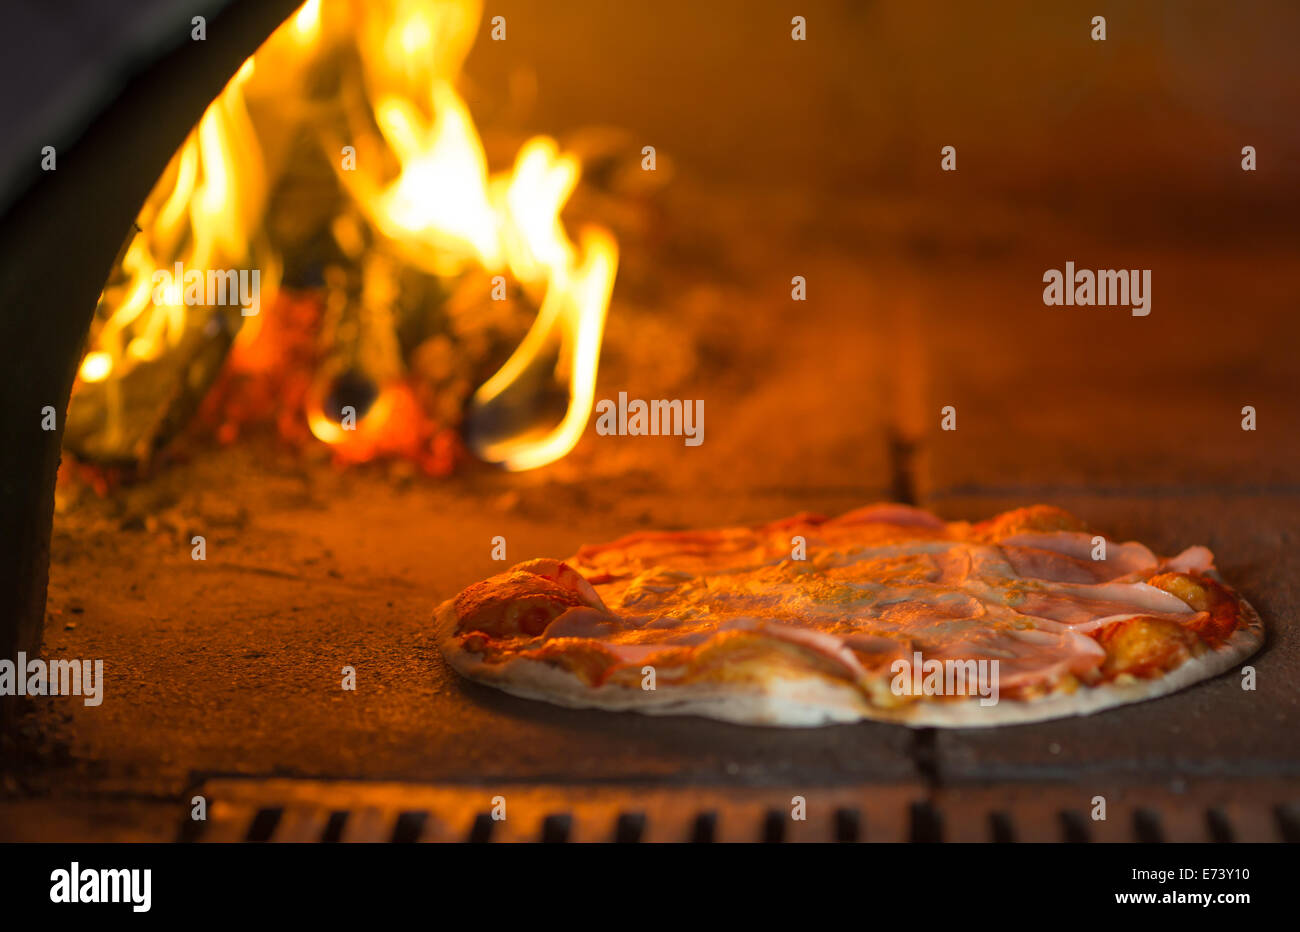 Pizza baking in traditional oven - Stock Image